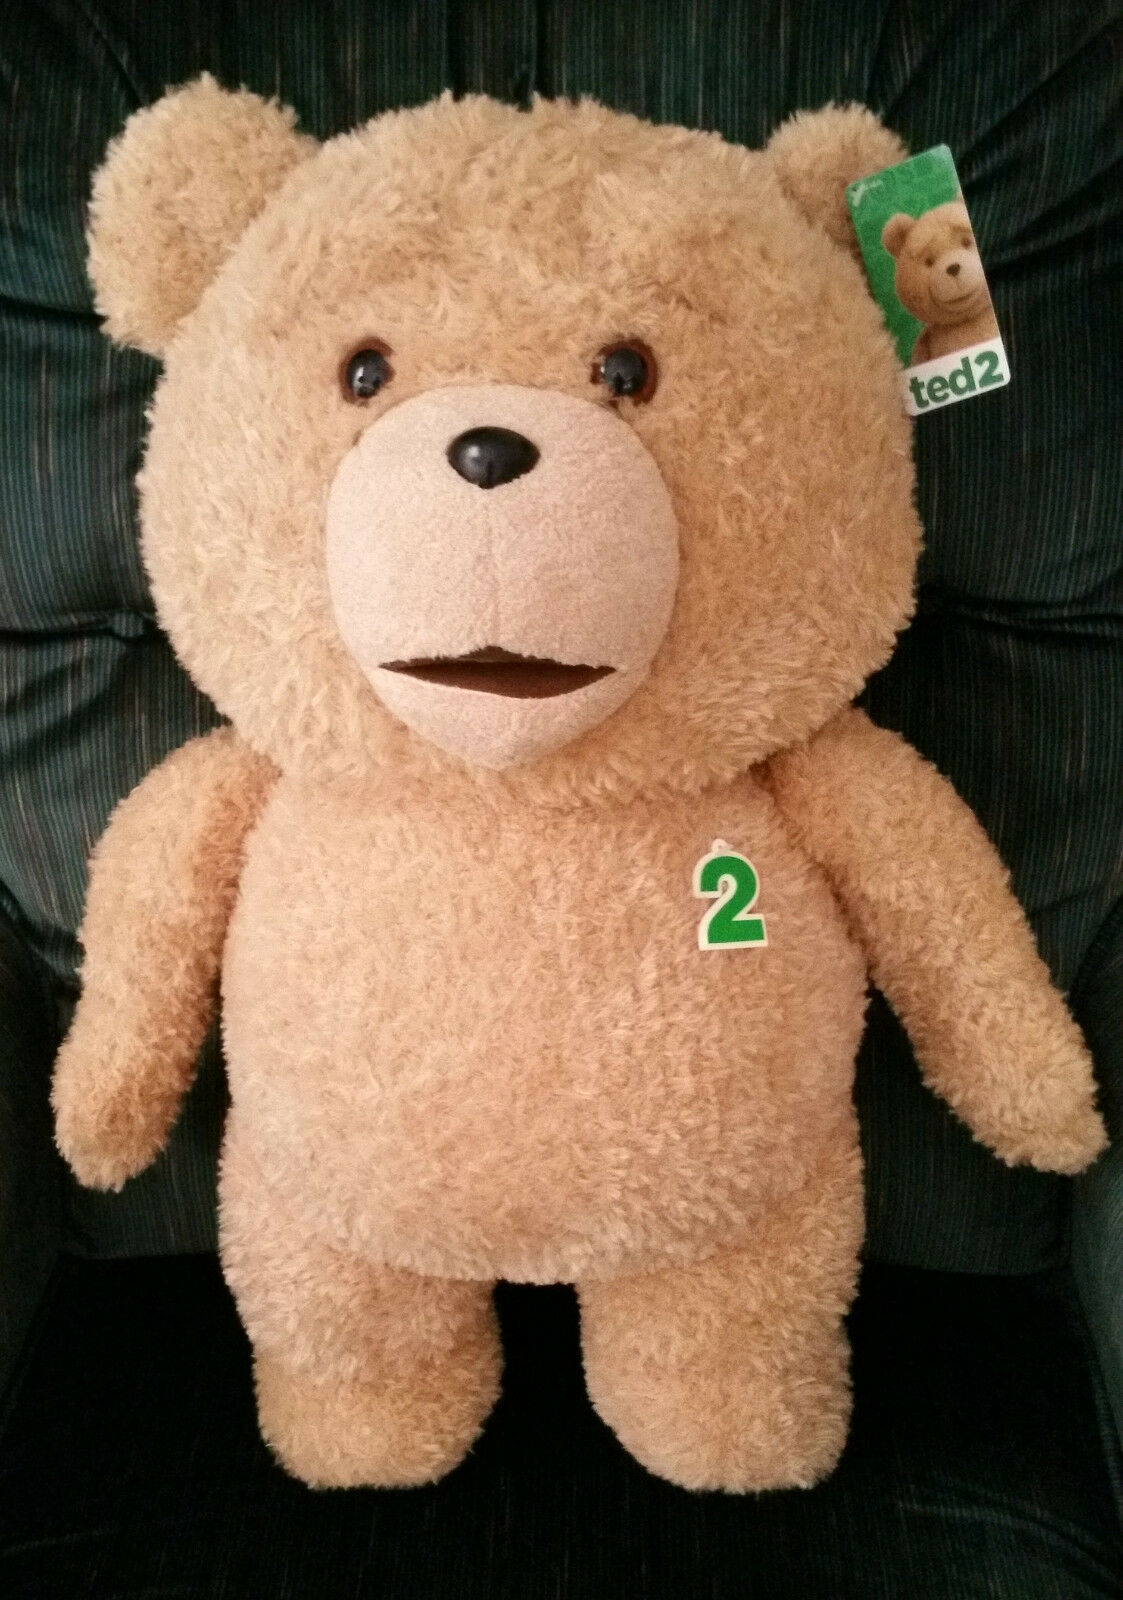 TED 2 - TED 24 INCH R RATED TALKING PLUSH TEDDY BEAR-  10.00 DISCOUNTED